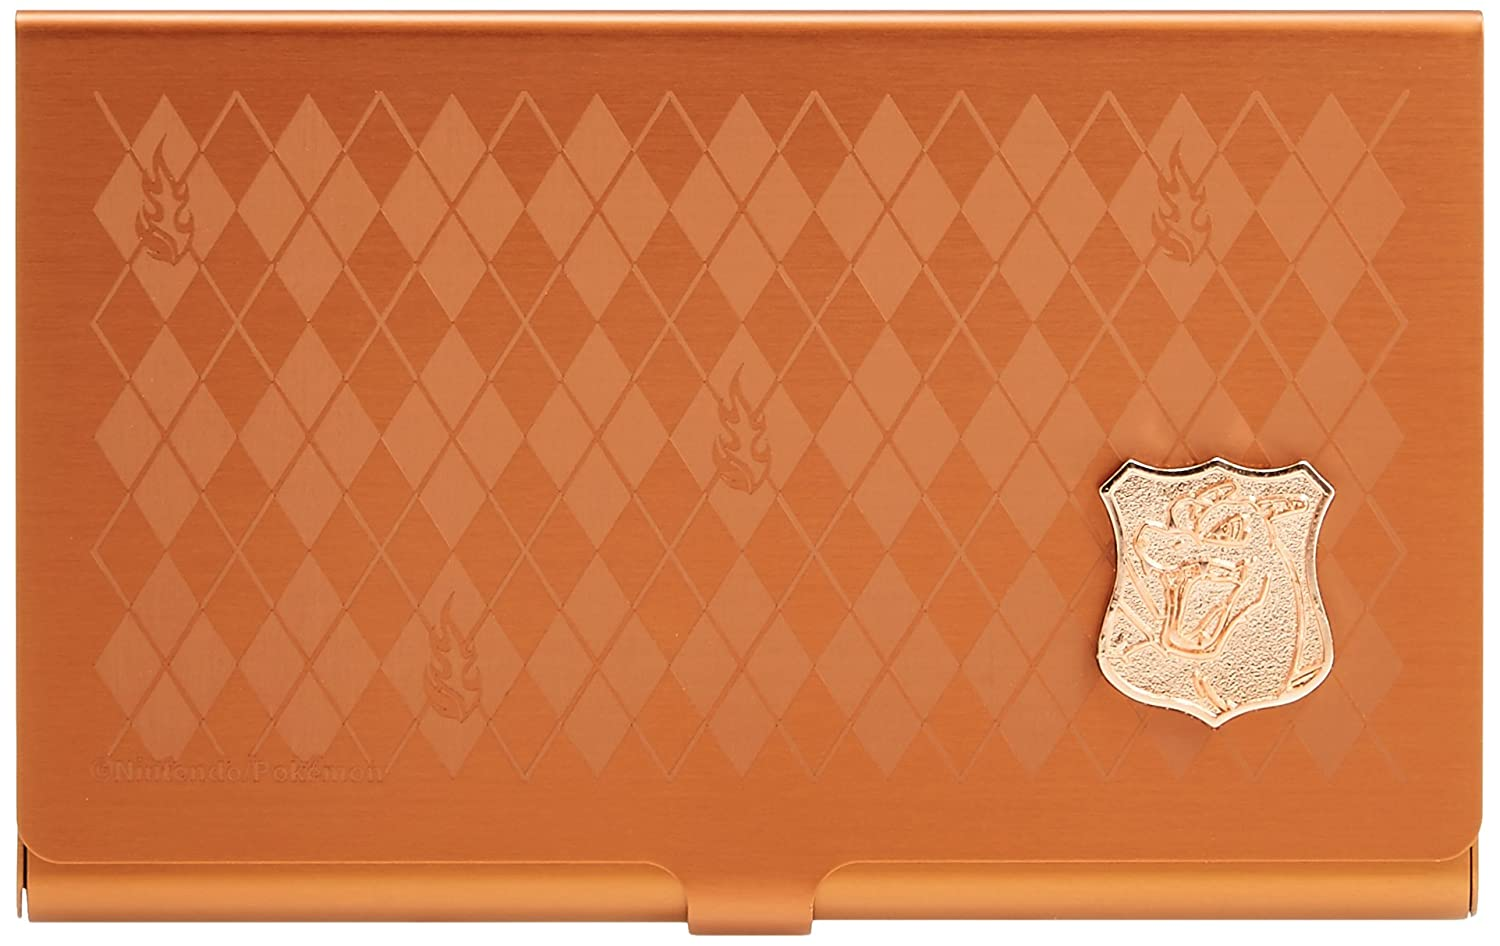 JP Pokemon Metal Card Case / Charizard